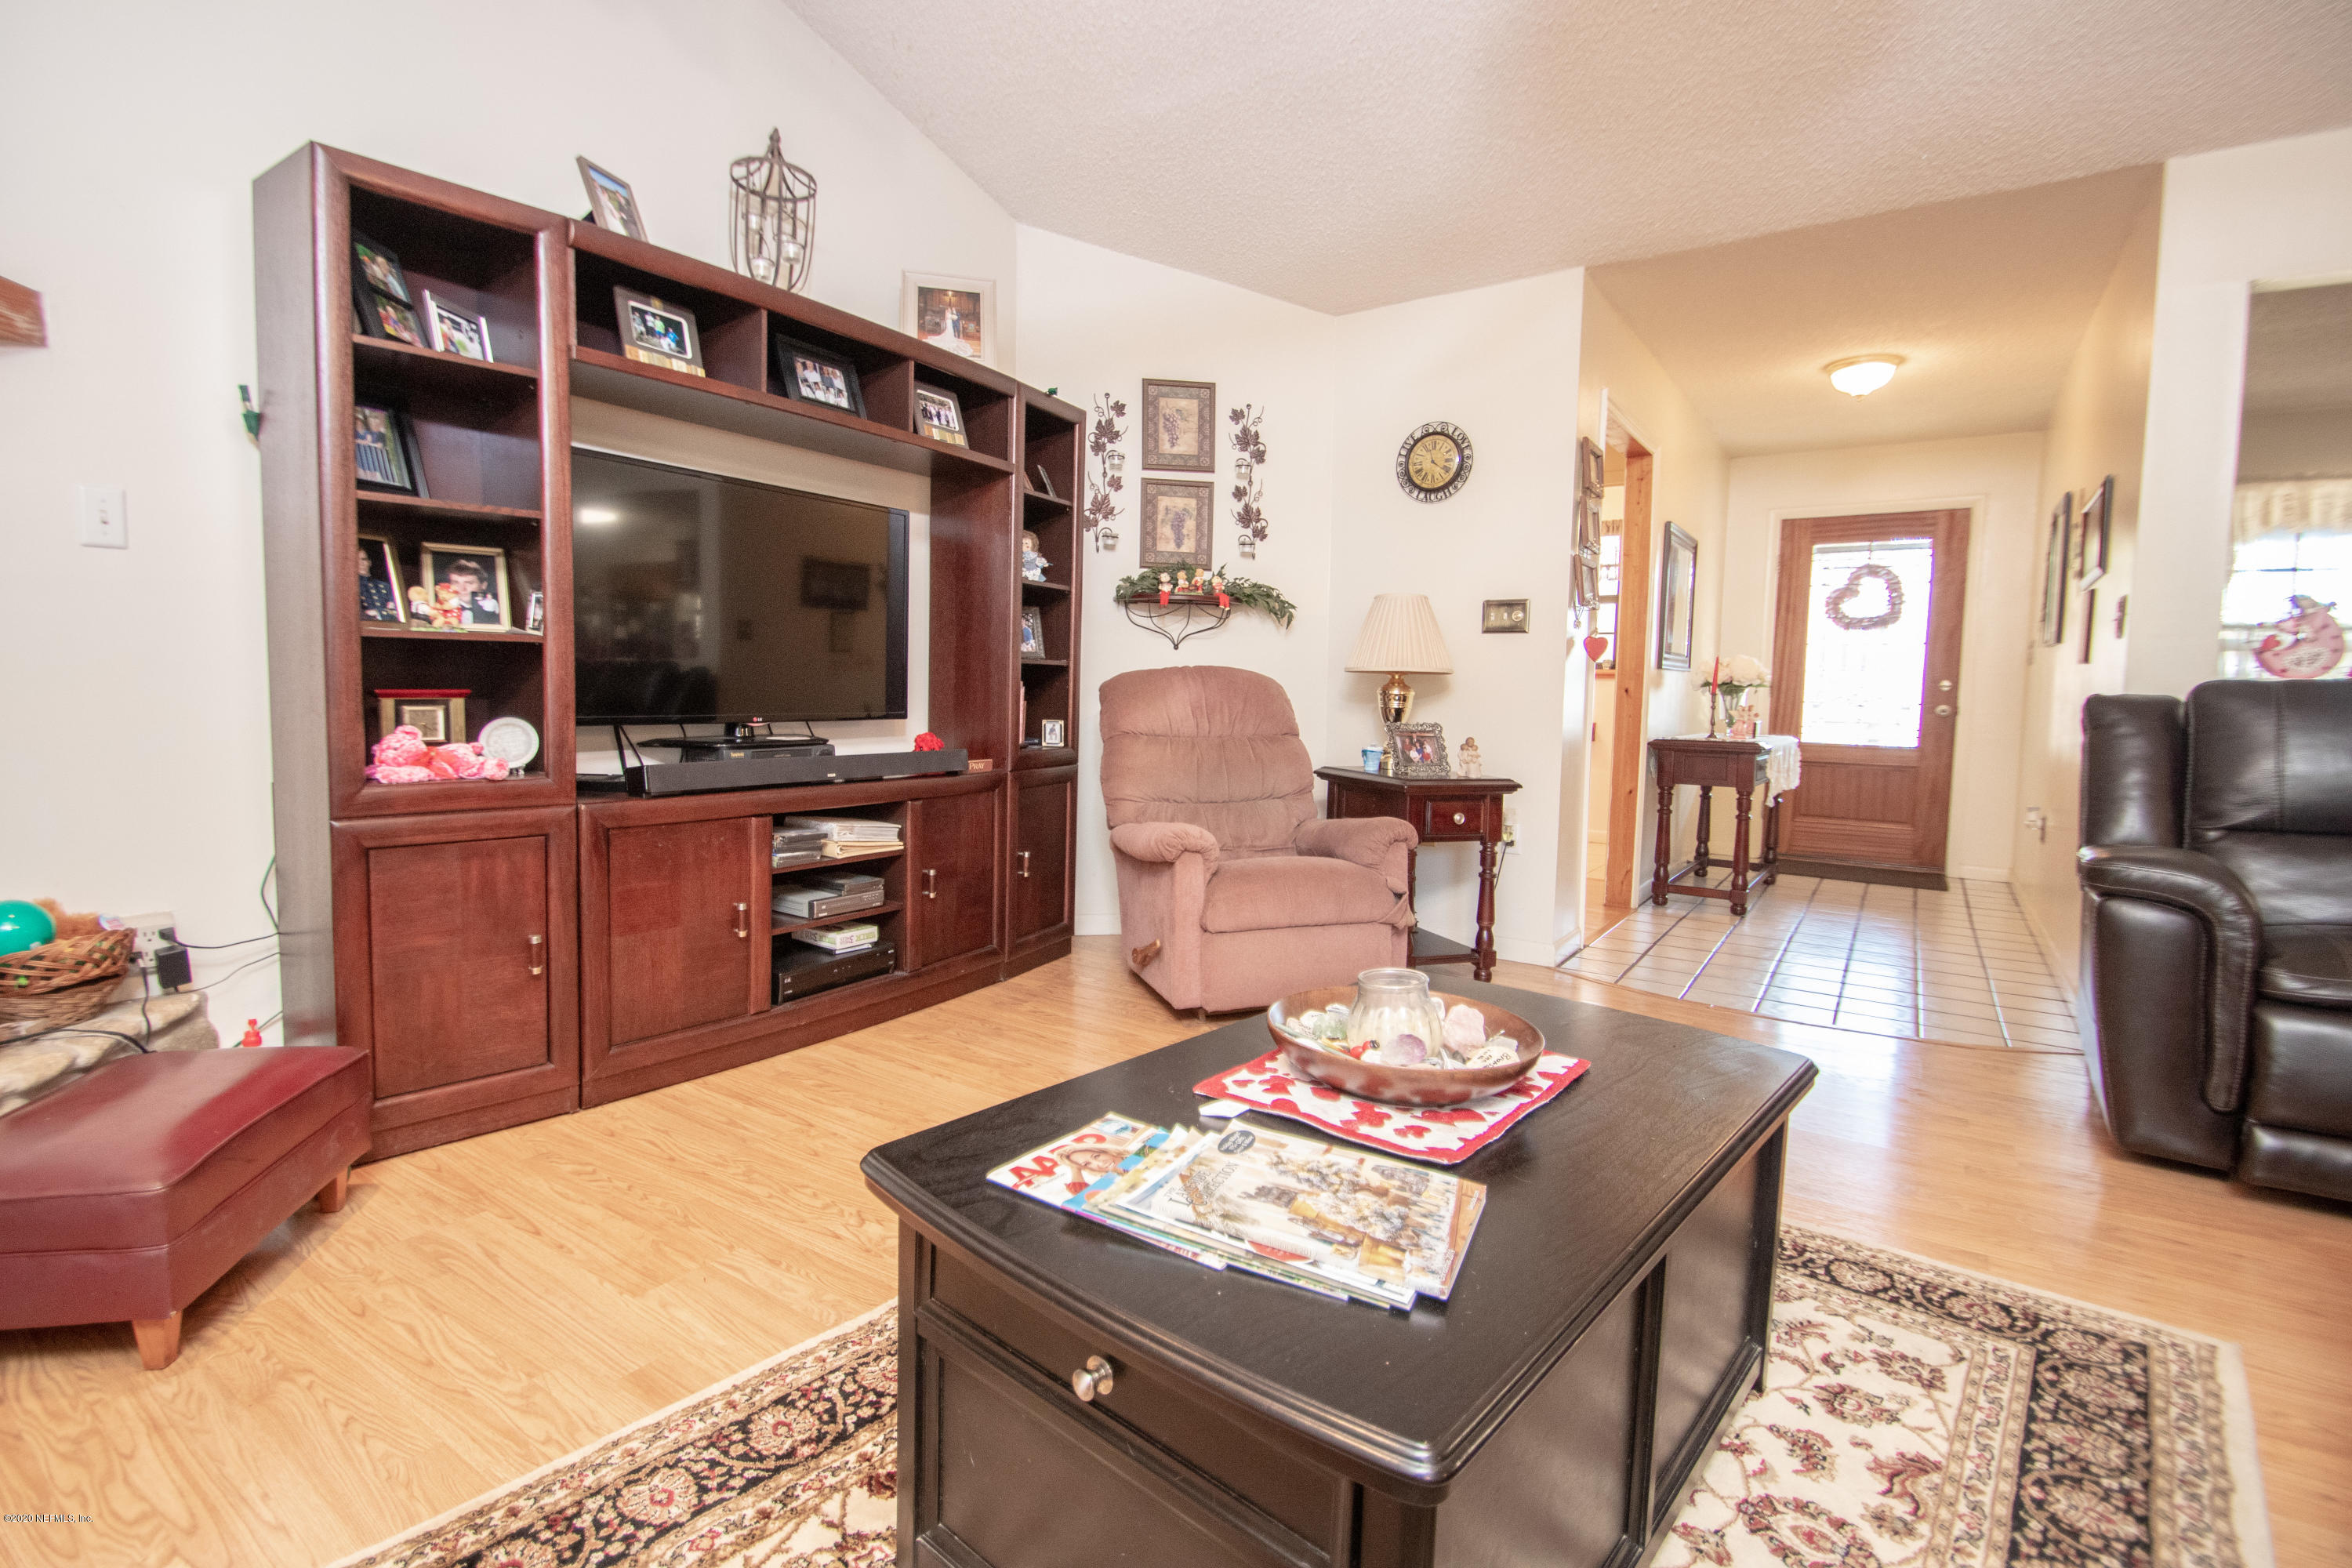 12249 198TH, LAKE BUTLER, FLORIDA 32054, 3 Bedrooms Bedrooms, ,3 BathroomsBathrooms,Residential,For sale,198TH,1048545